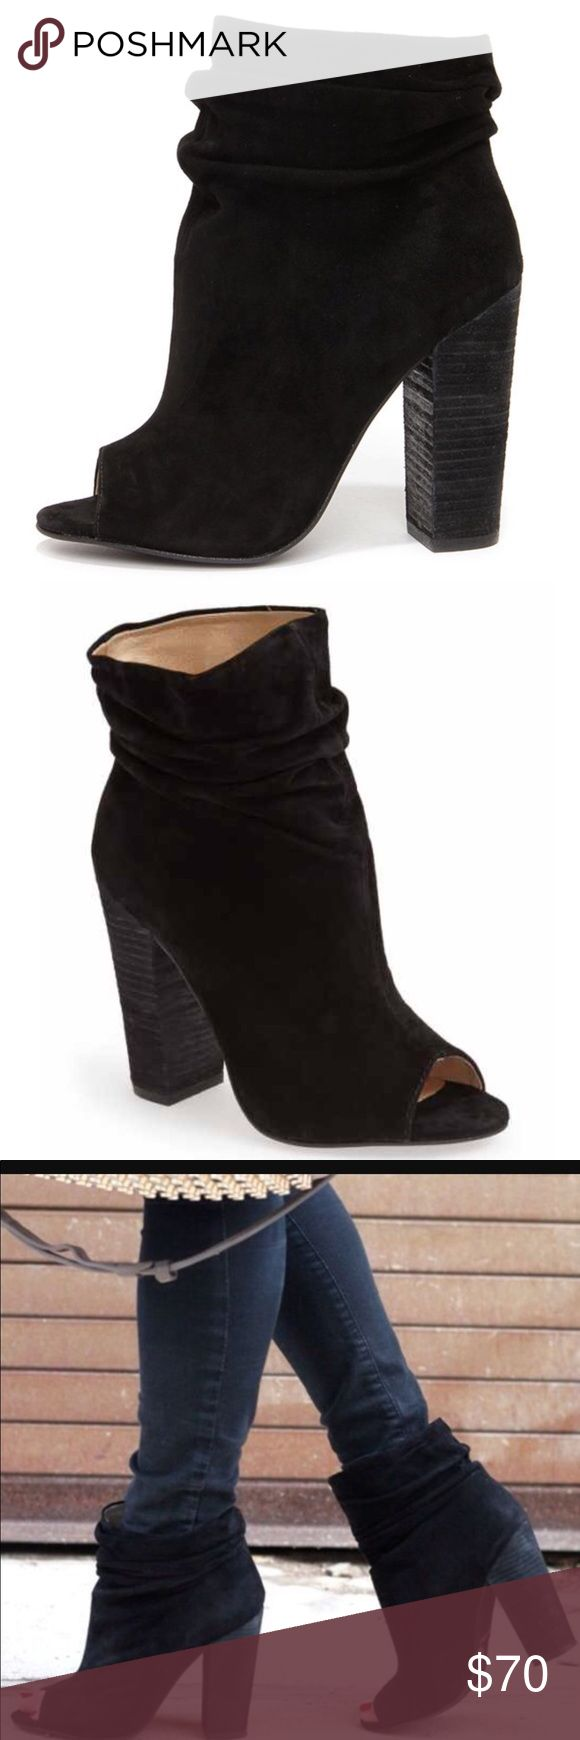 Chinese laundry Kristin cavallari laurel suede Lauren suede bootie. NEVER WORN. can post pics of the actual booties. Stickers still in tact with no scratches. Size 7. Chinese Laundry Shoes Ankle Boots & Booties